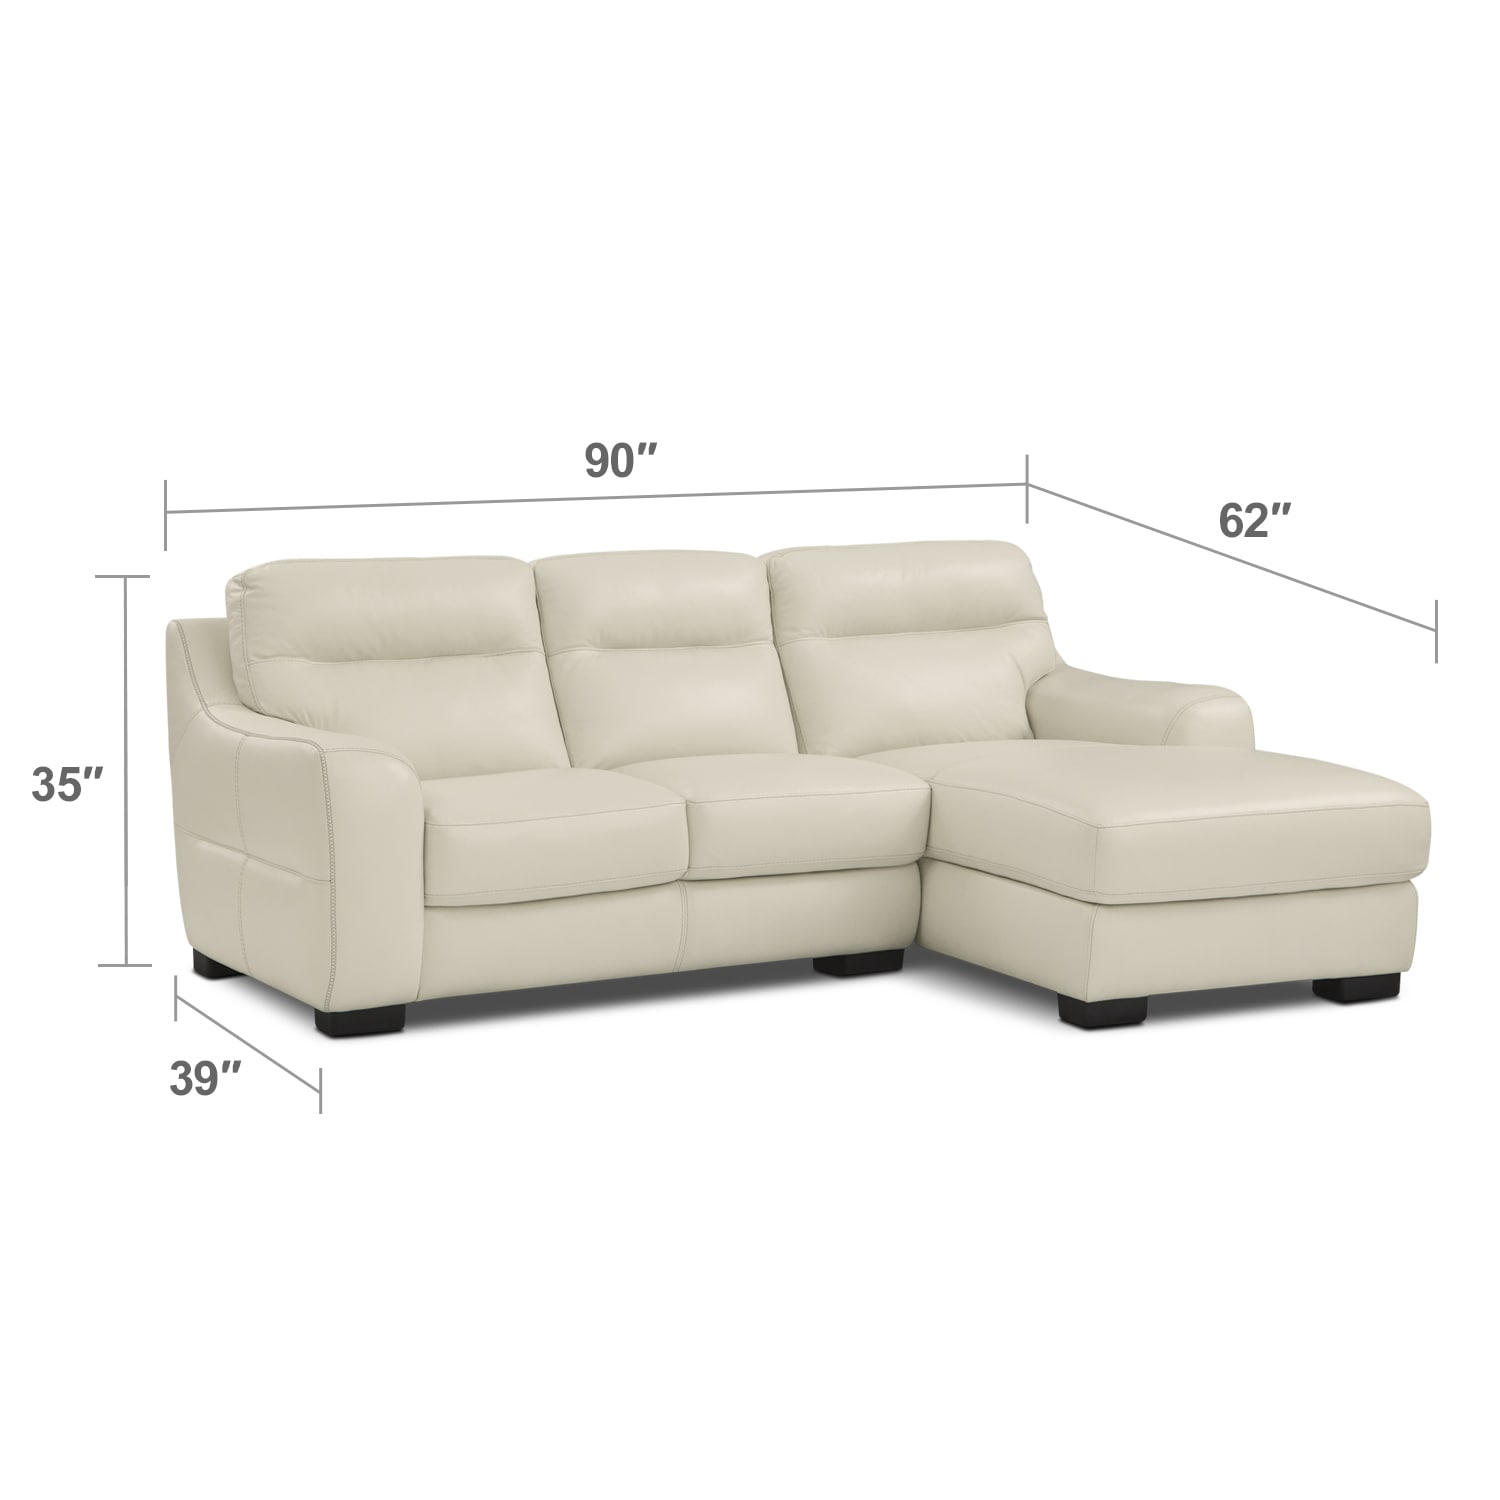 Living Room Furniture - Rocco 2-Piece Sectional with Right-Facing Chaise - Snow